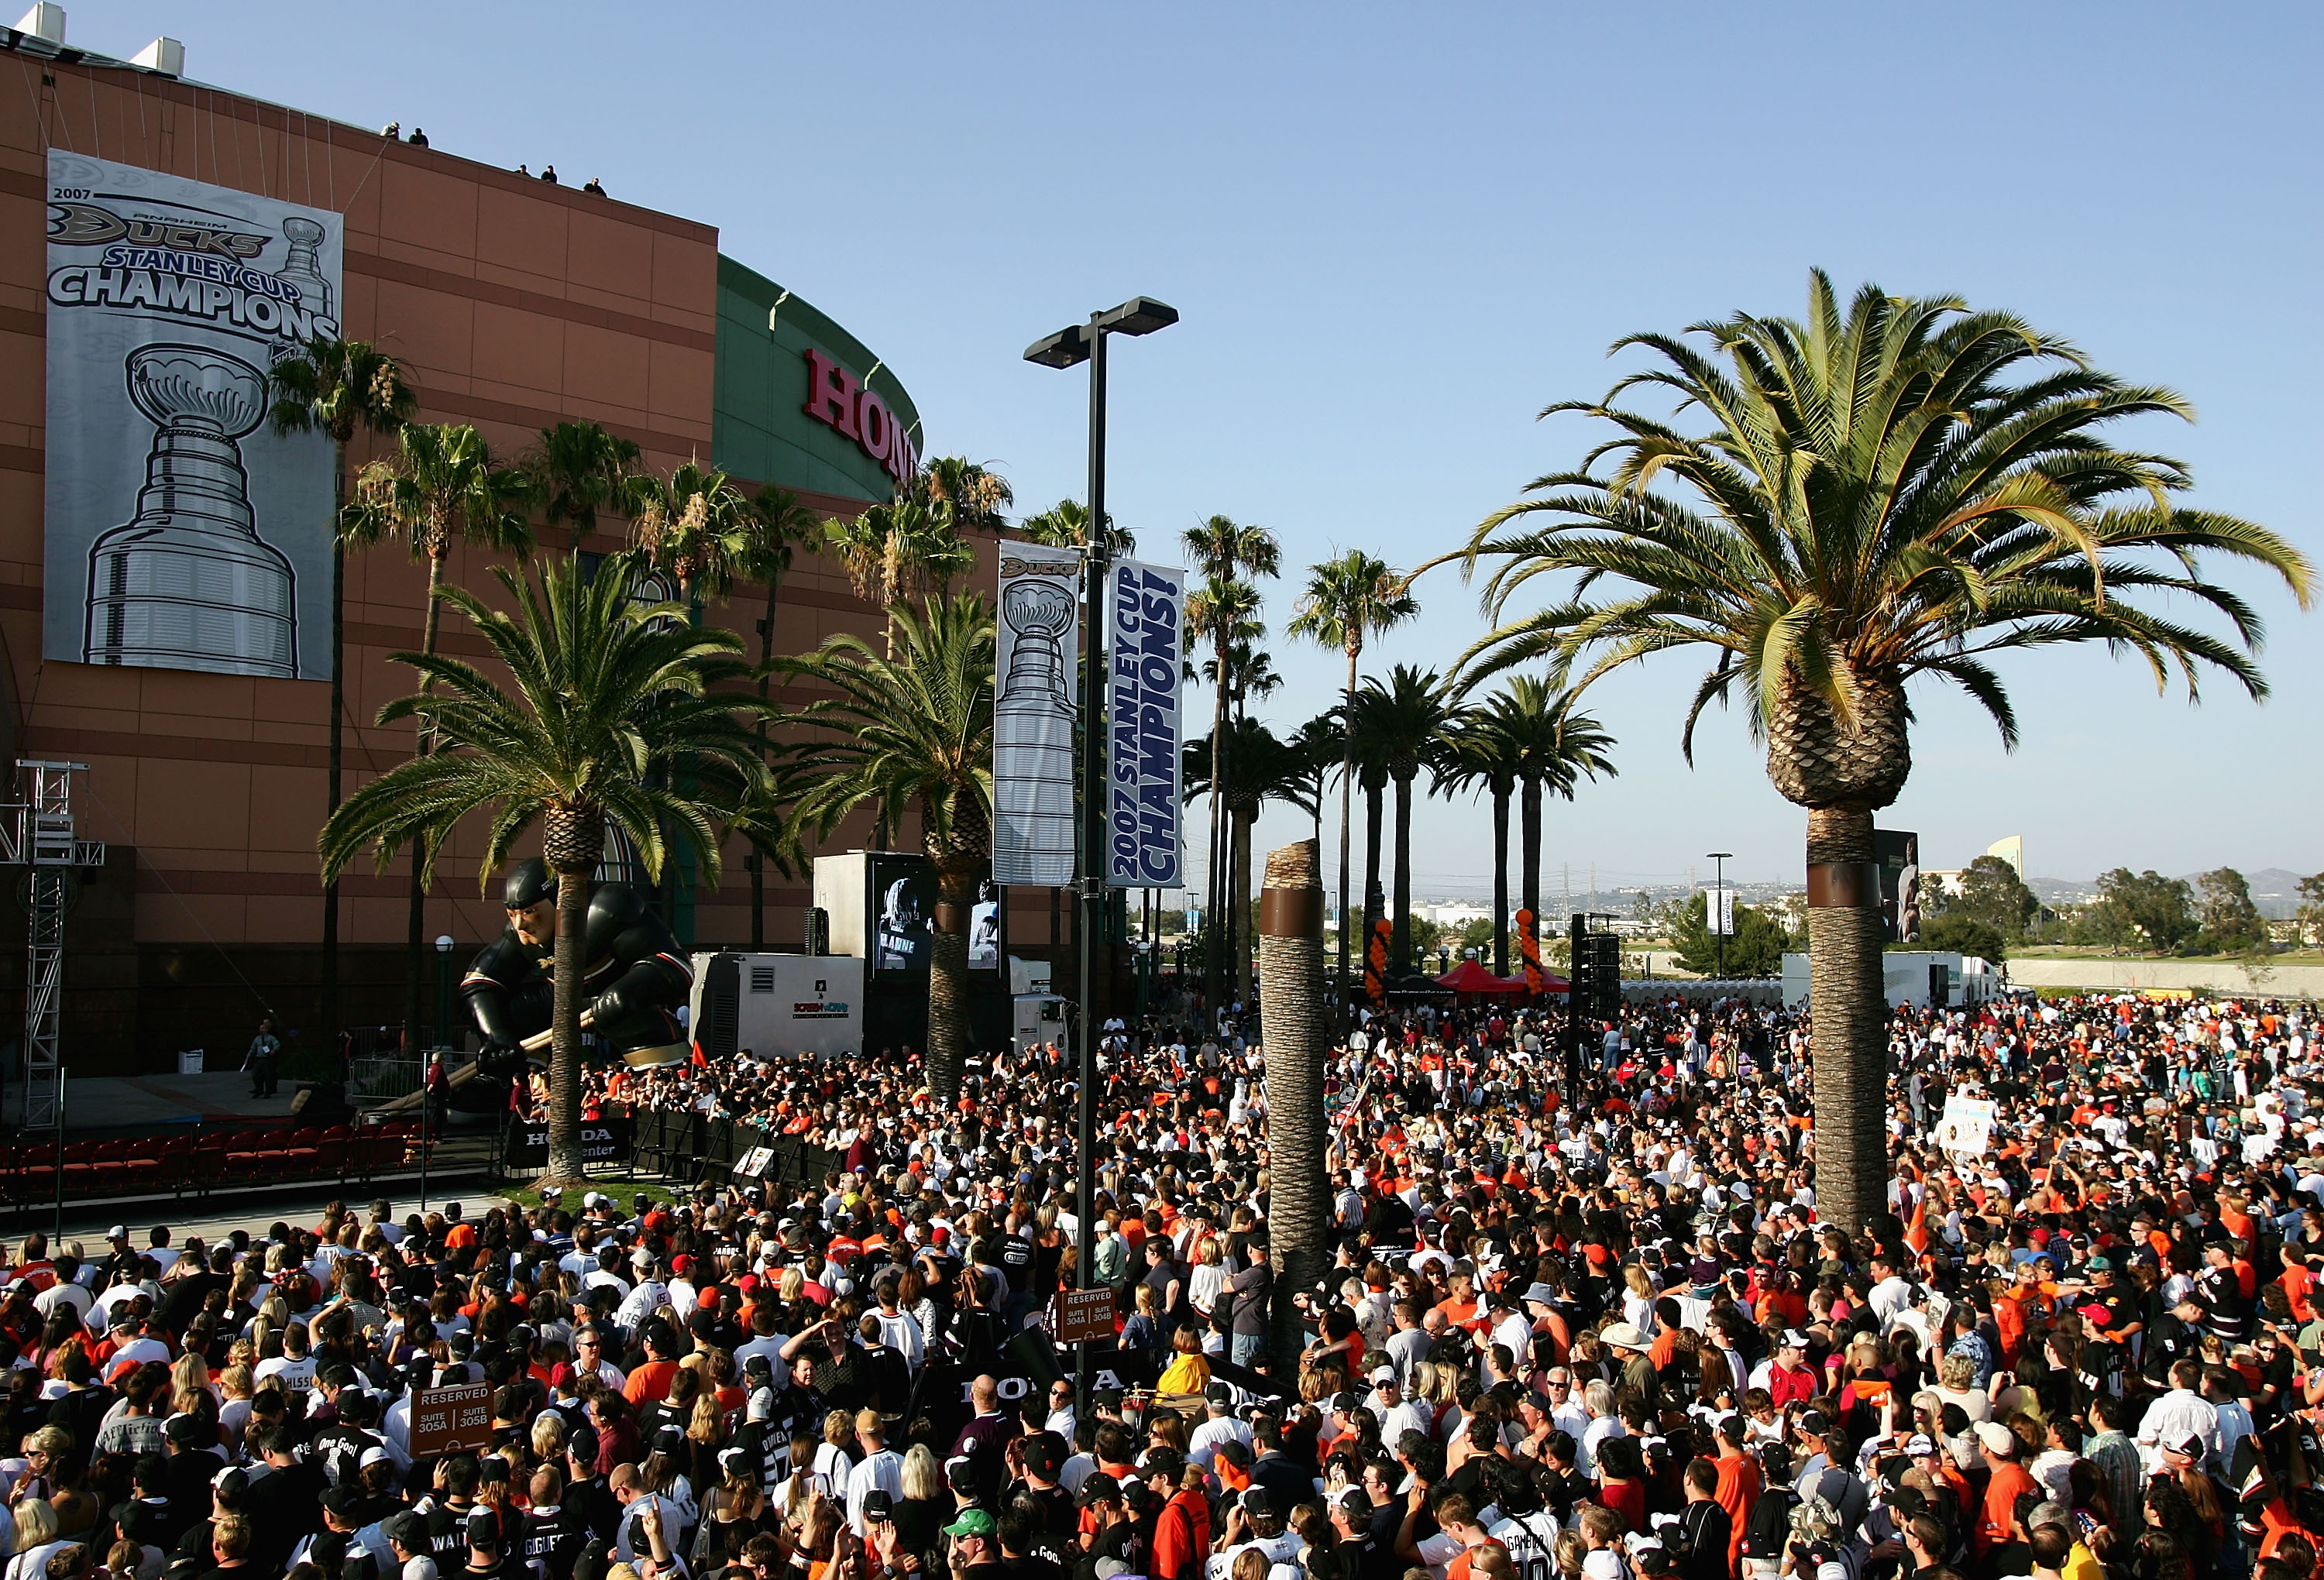 ANAHEIM, CA - JUNE 9:  Fans gather outside of the Honda Center to celebrate the Anaheim Ducks winning the 2007 Stanley Cup June 9, 2007 in Anaheim, California. (Photo by Harry How/Getty Images)